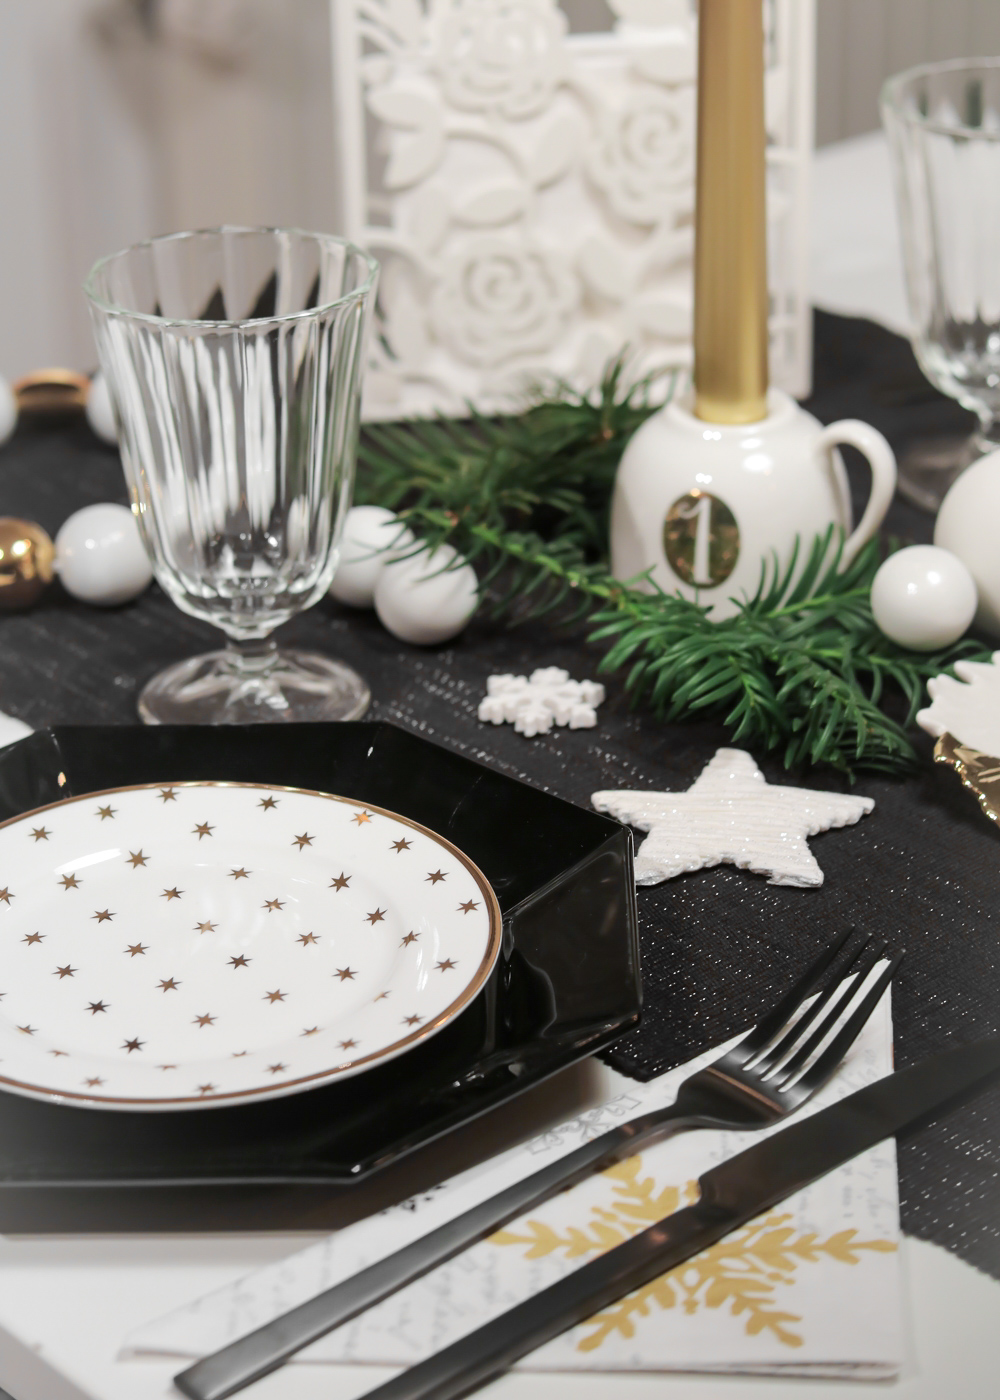 ediths weihnachten tischdekoration advent schwarzes besteck teller gold sterne 1 lavie deboite. Black Bedroom Furniture Sets. Home Design Ideas